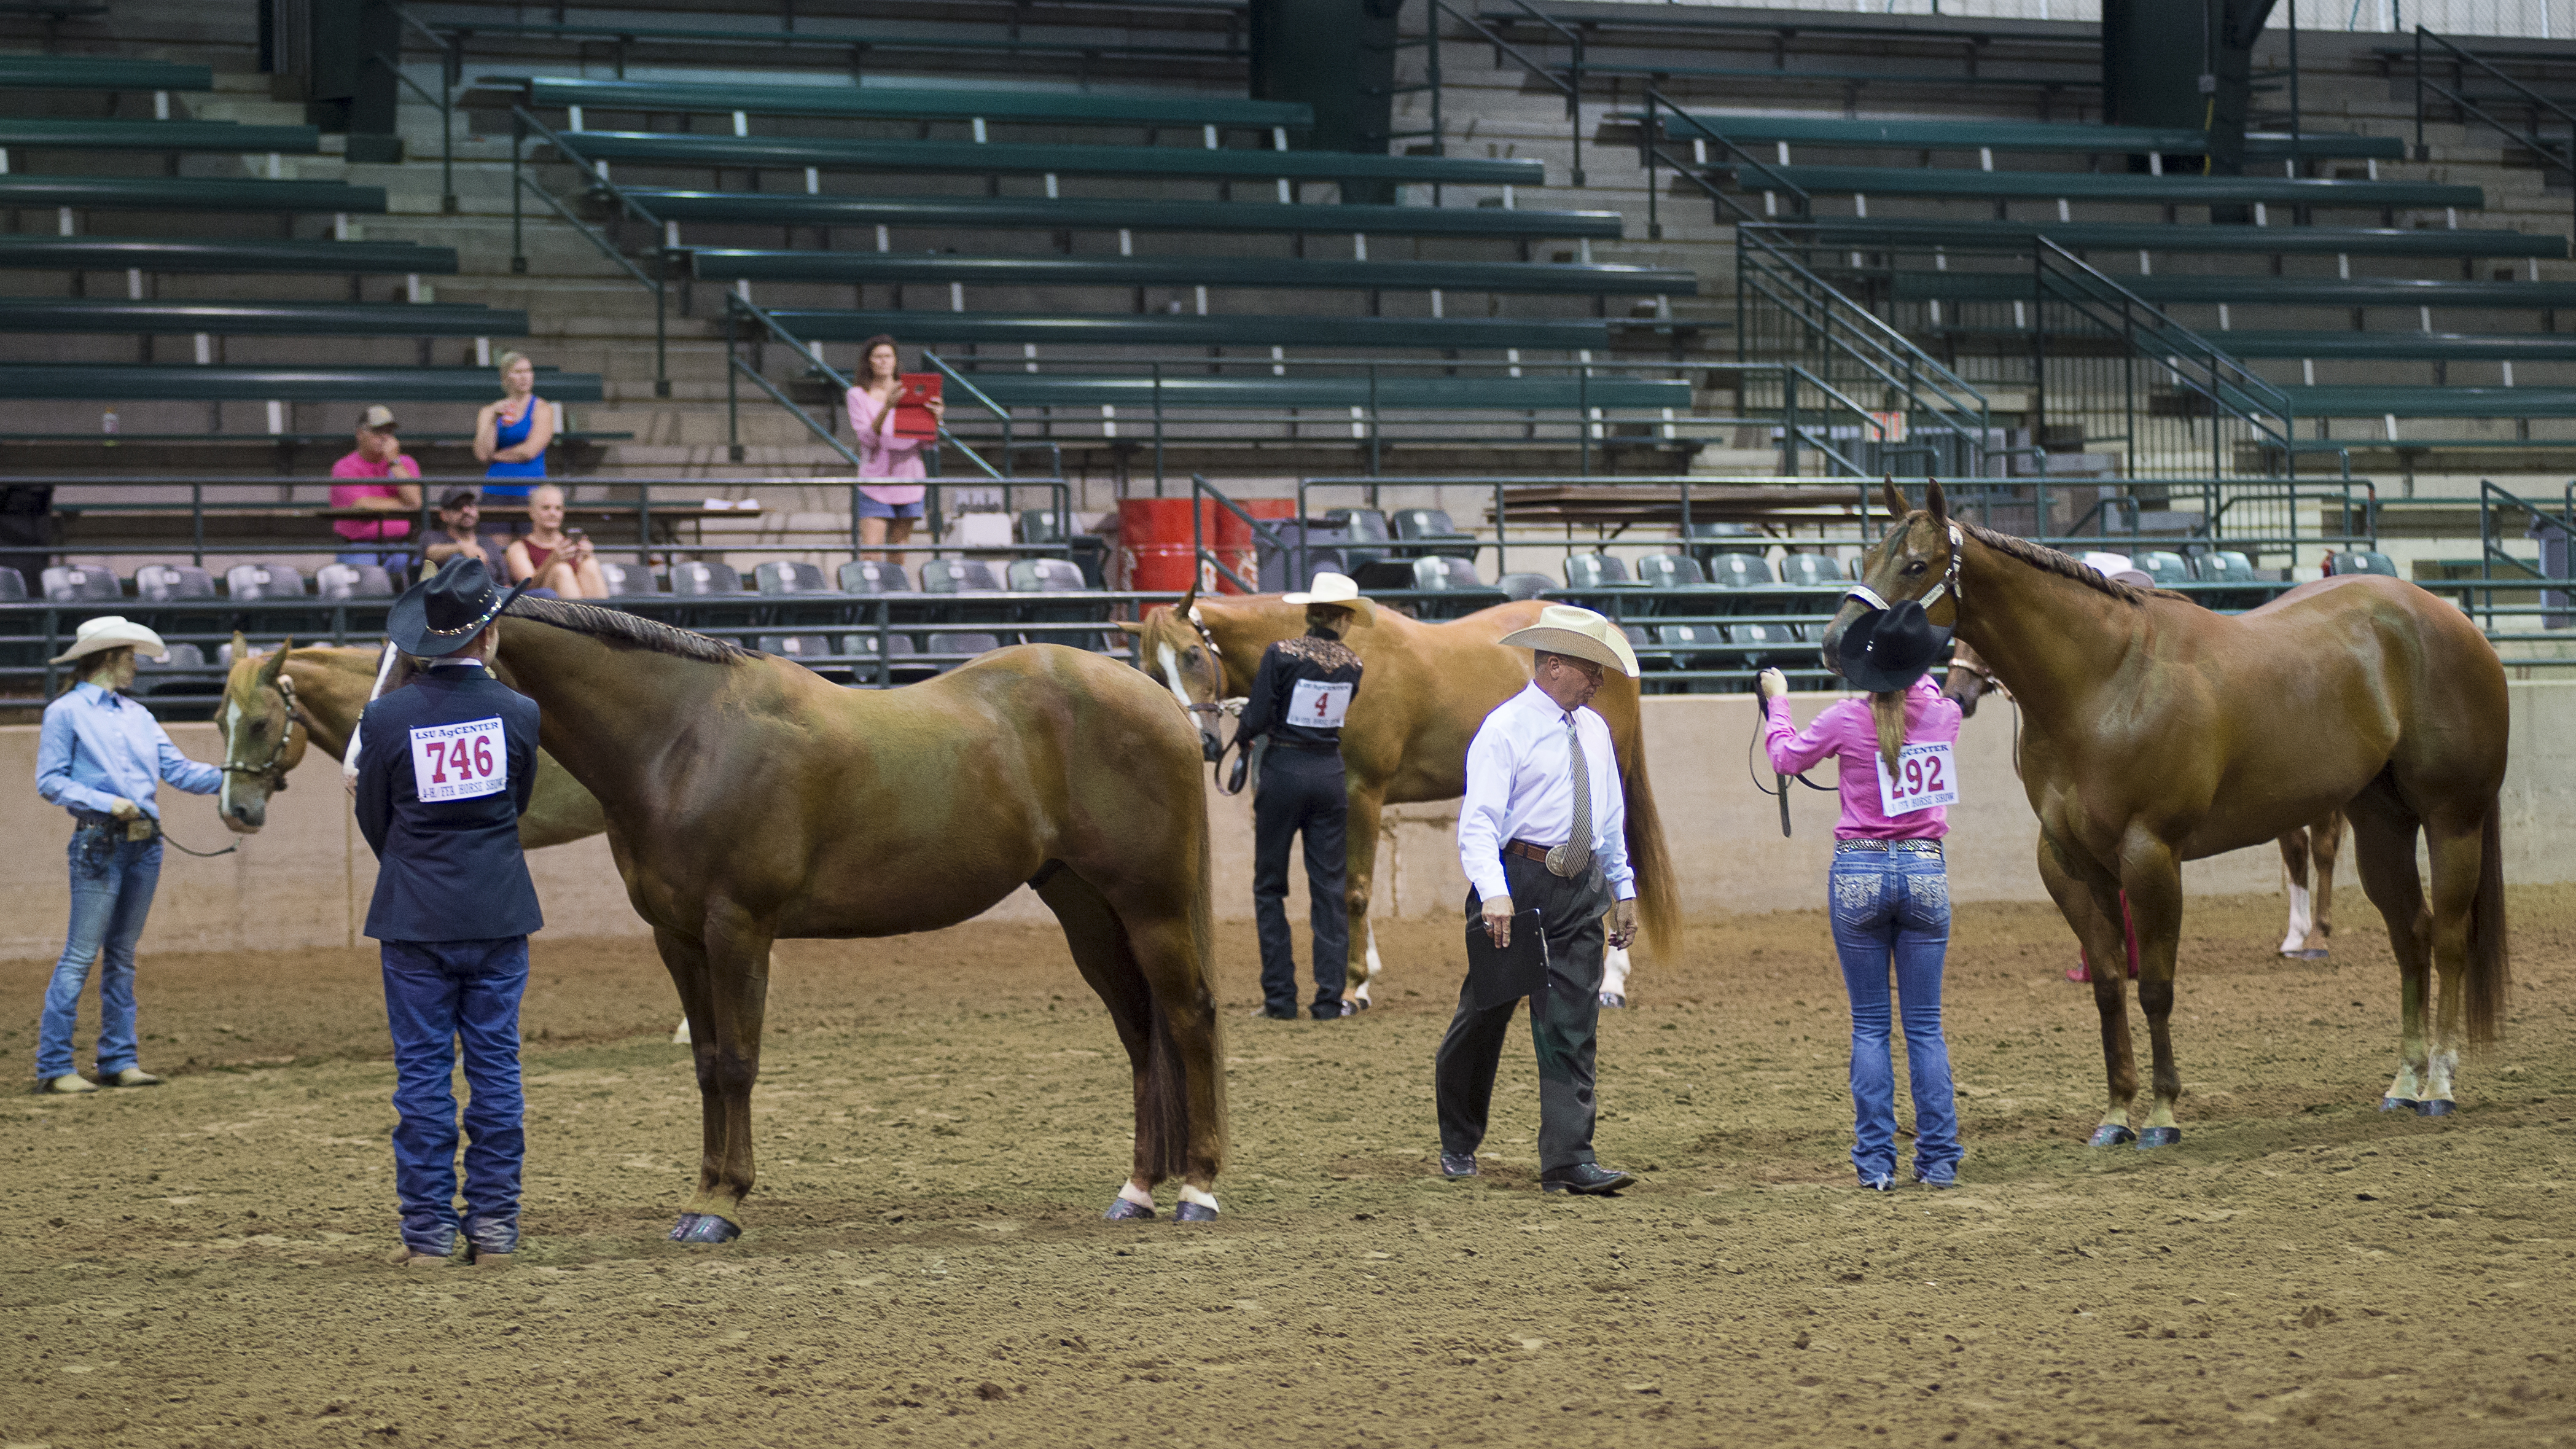 4-H, FFA State Horse Show results released